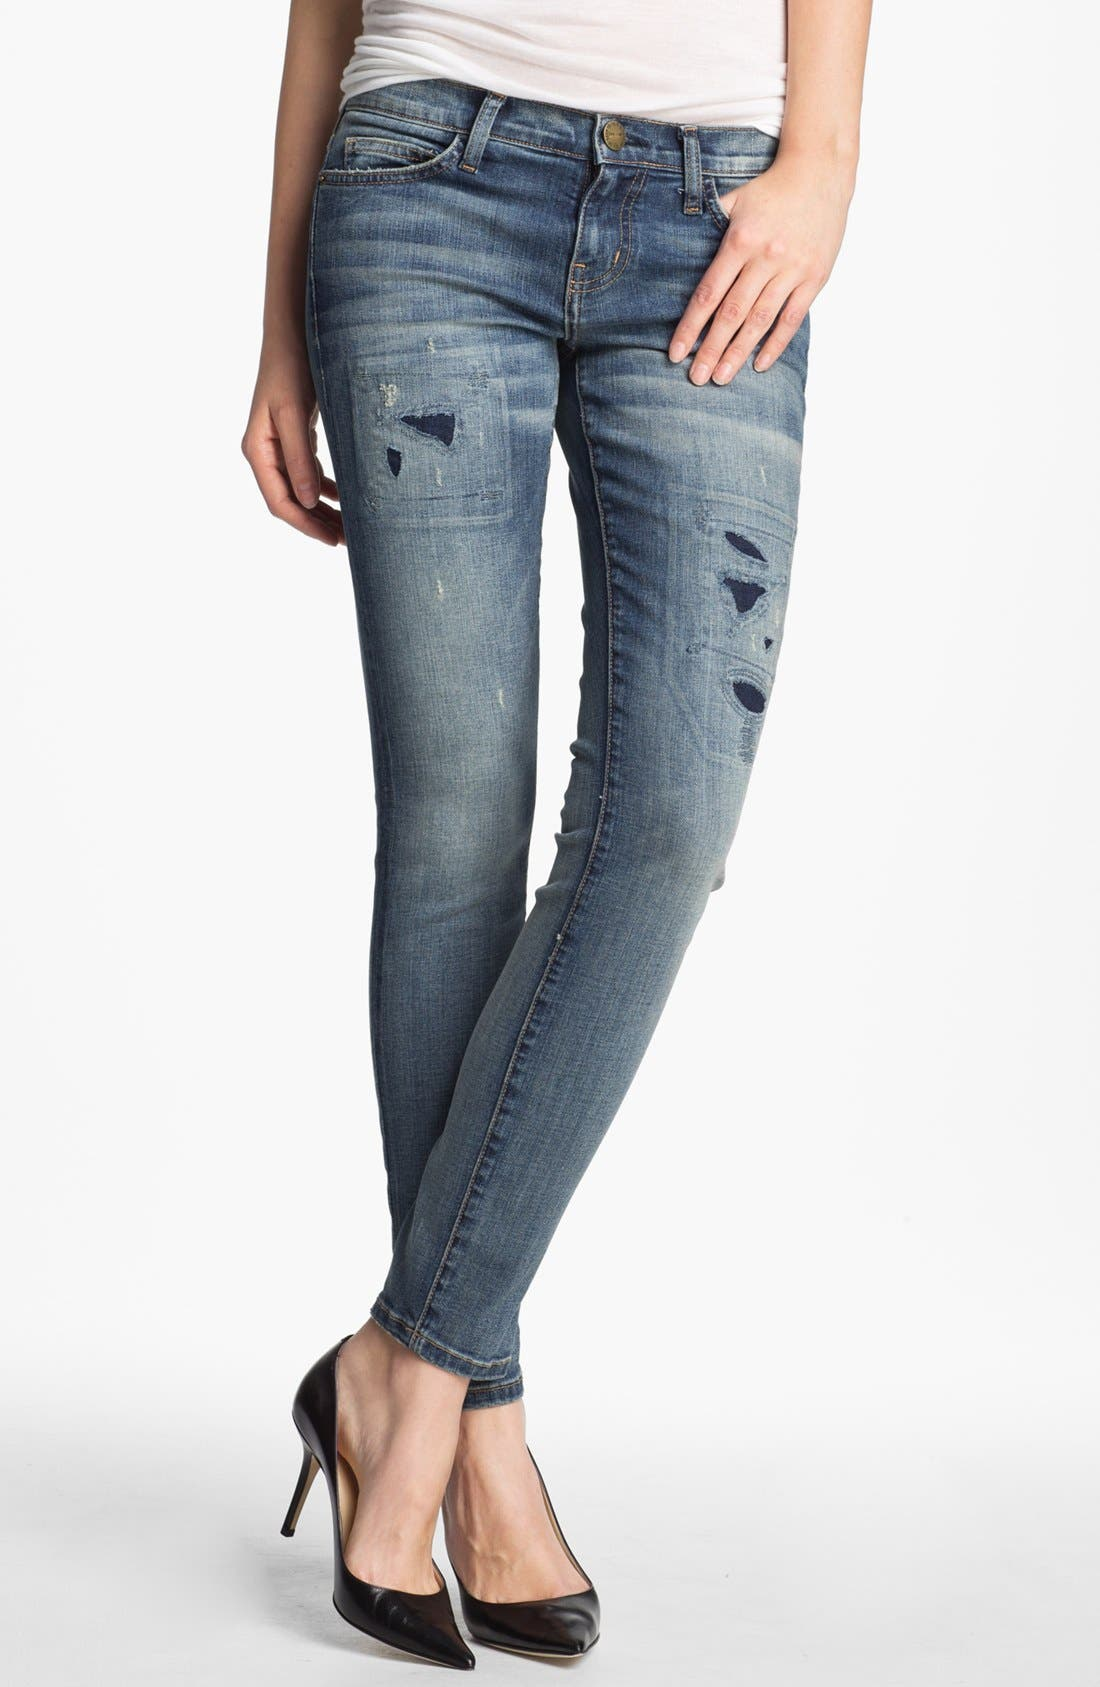 Alternate Image 1 Selected - Current/Elliott 'The Ankle' Skinny Jeans (Pixie with Repair)